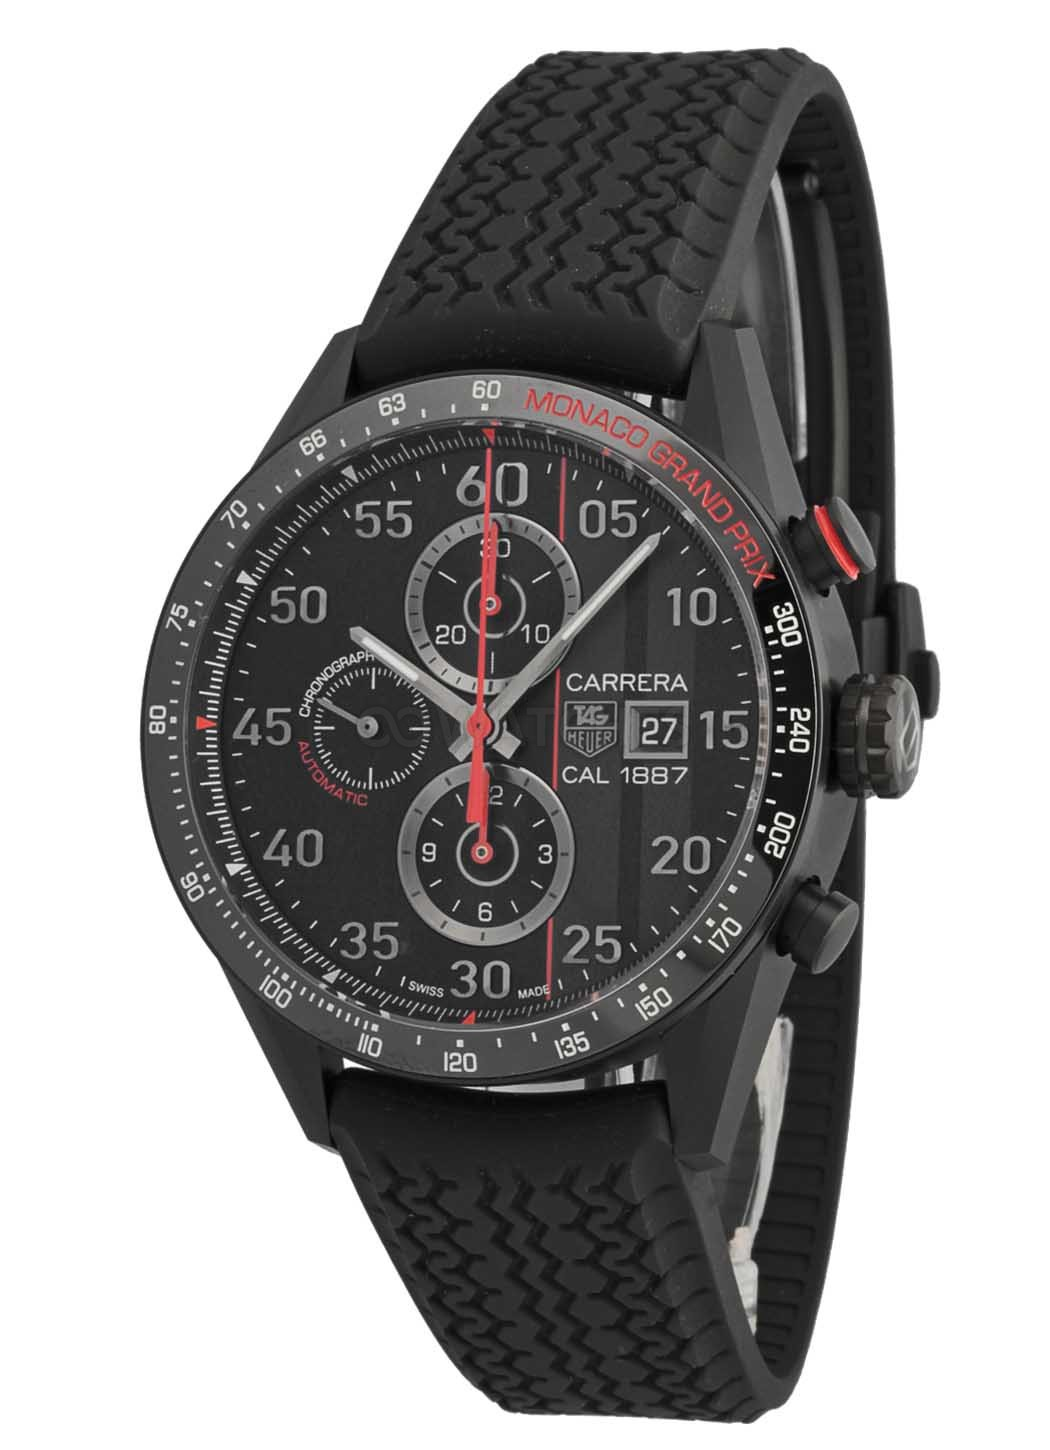 tag heuer carrera monaco grand prix limited edition chronograph car2a83 ft6033 gents watch. Black Bedroom Furniture Sets. Home Design Ideas